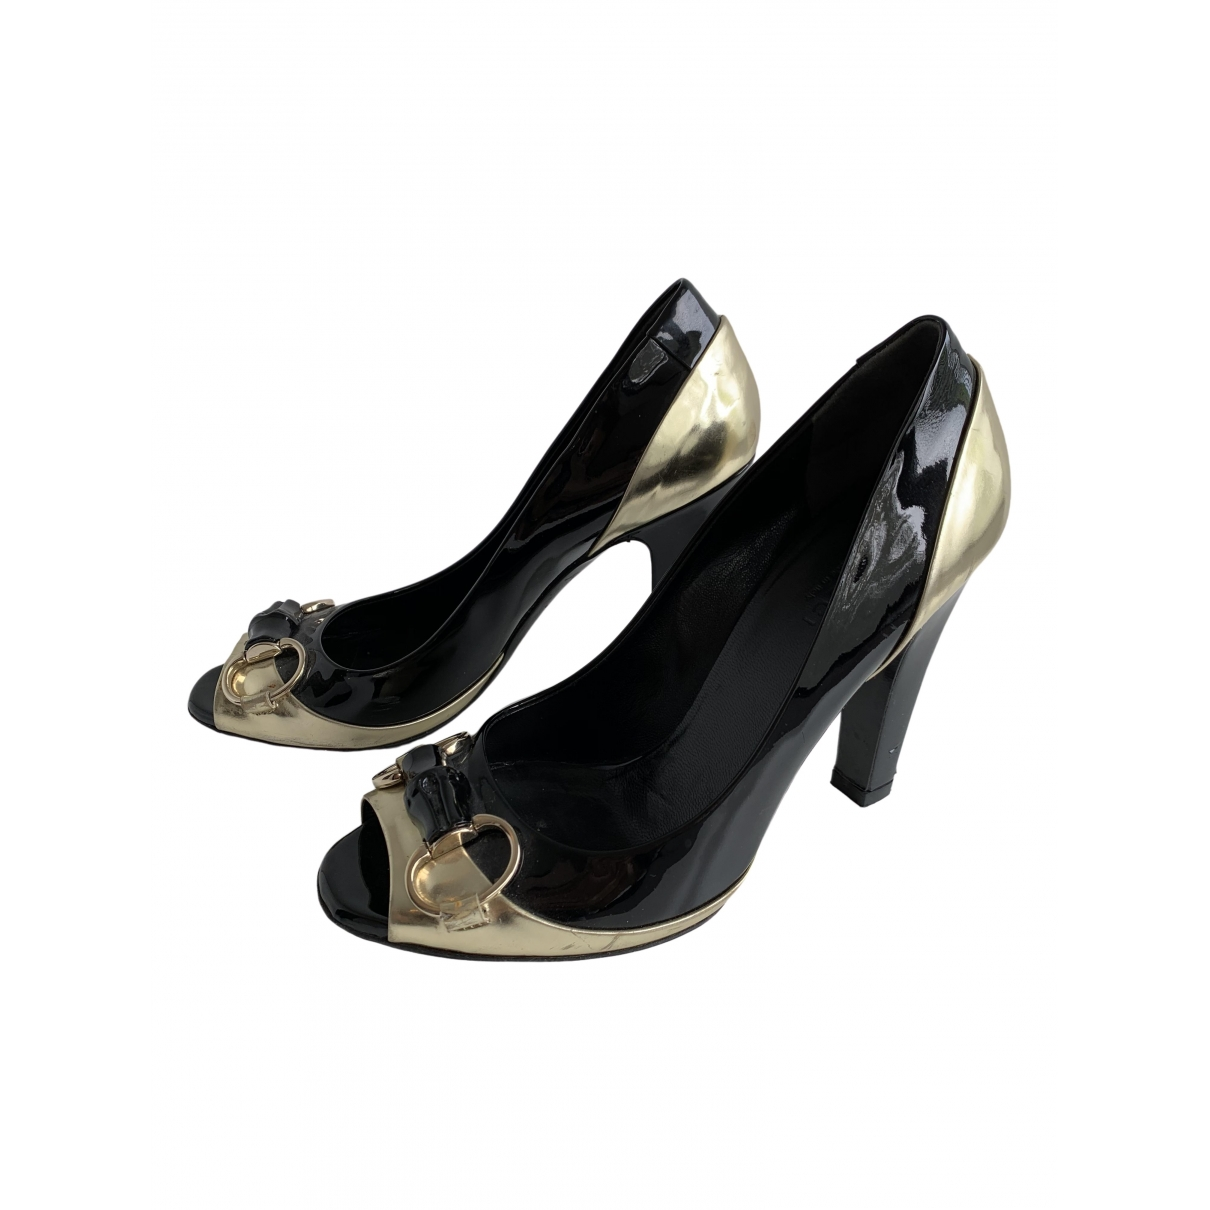 Gucci \N Black Patent leather Heels for Women 6.5 US